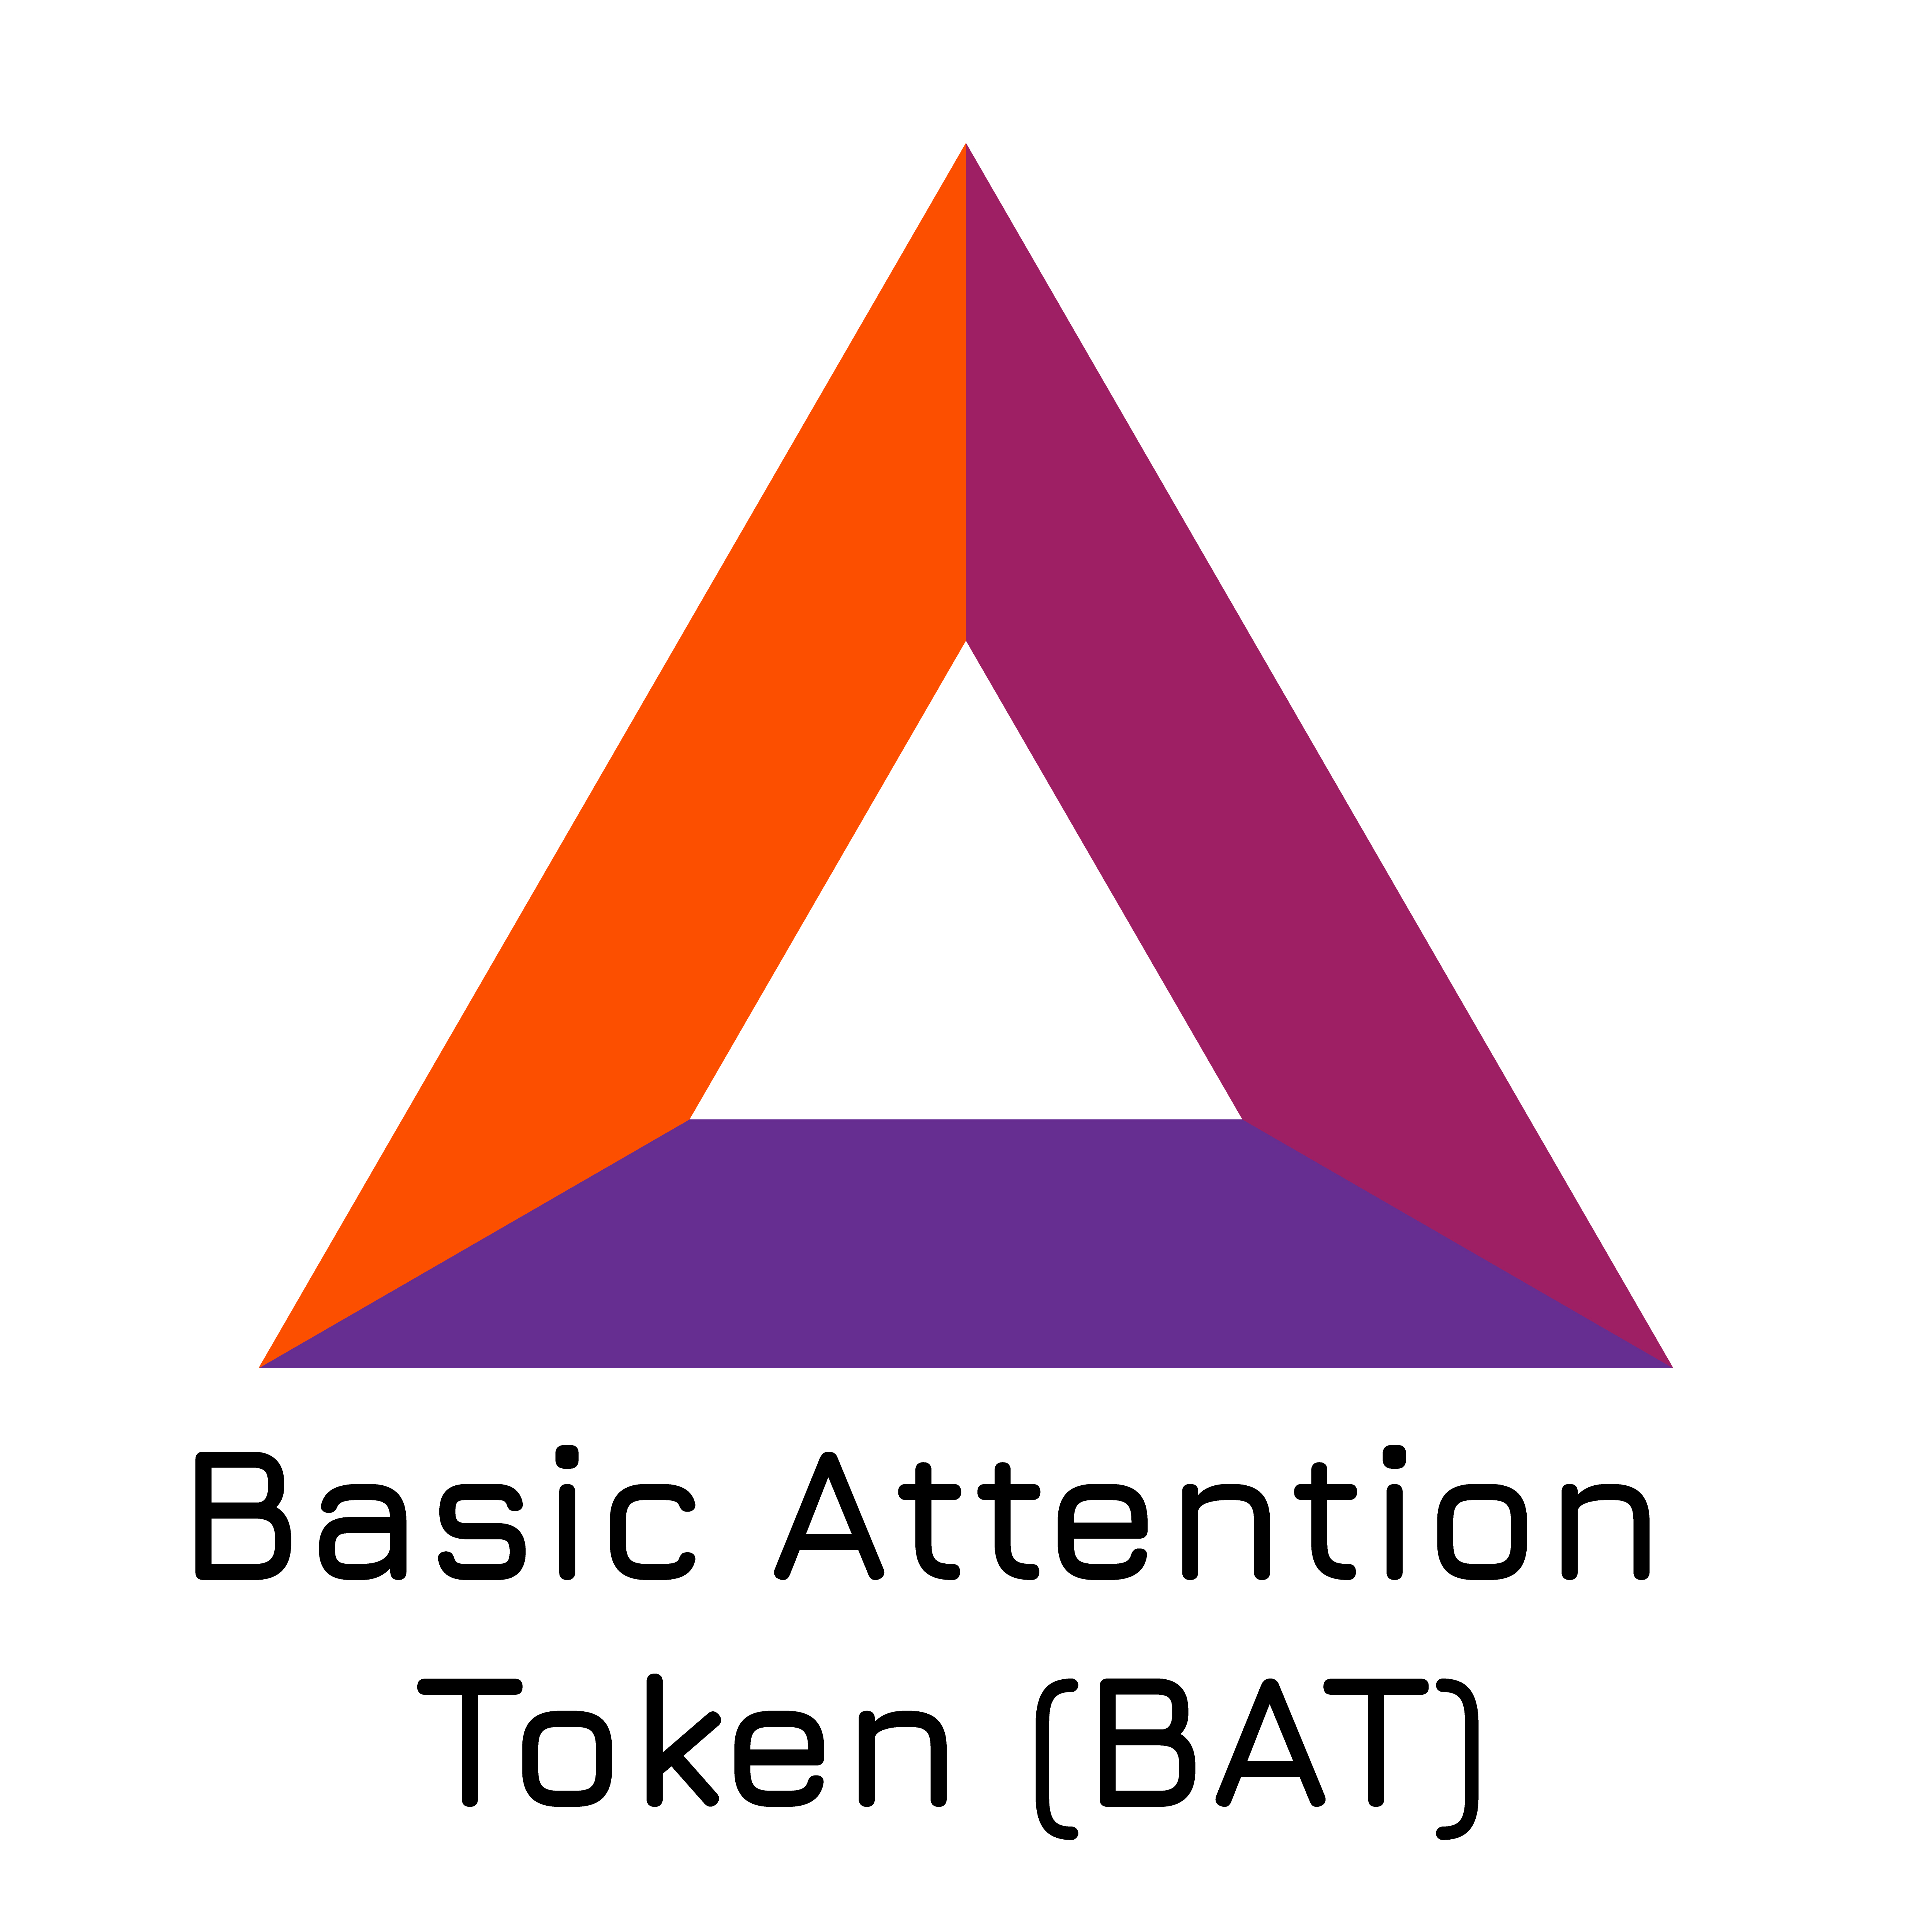 check the post:Basic Attention Token - The Future of Advertising for a description of the image